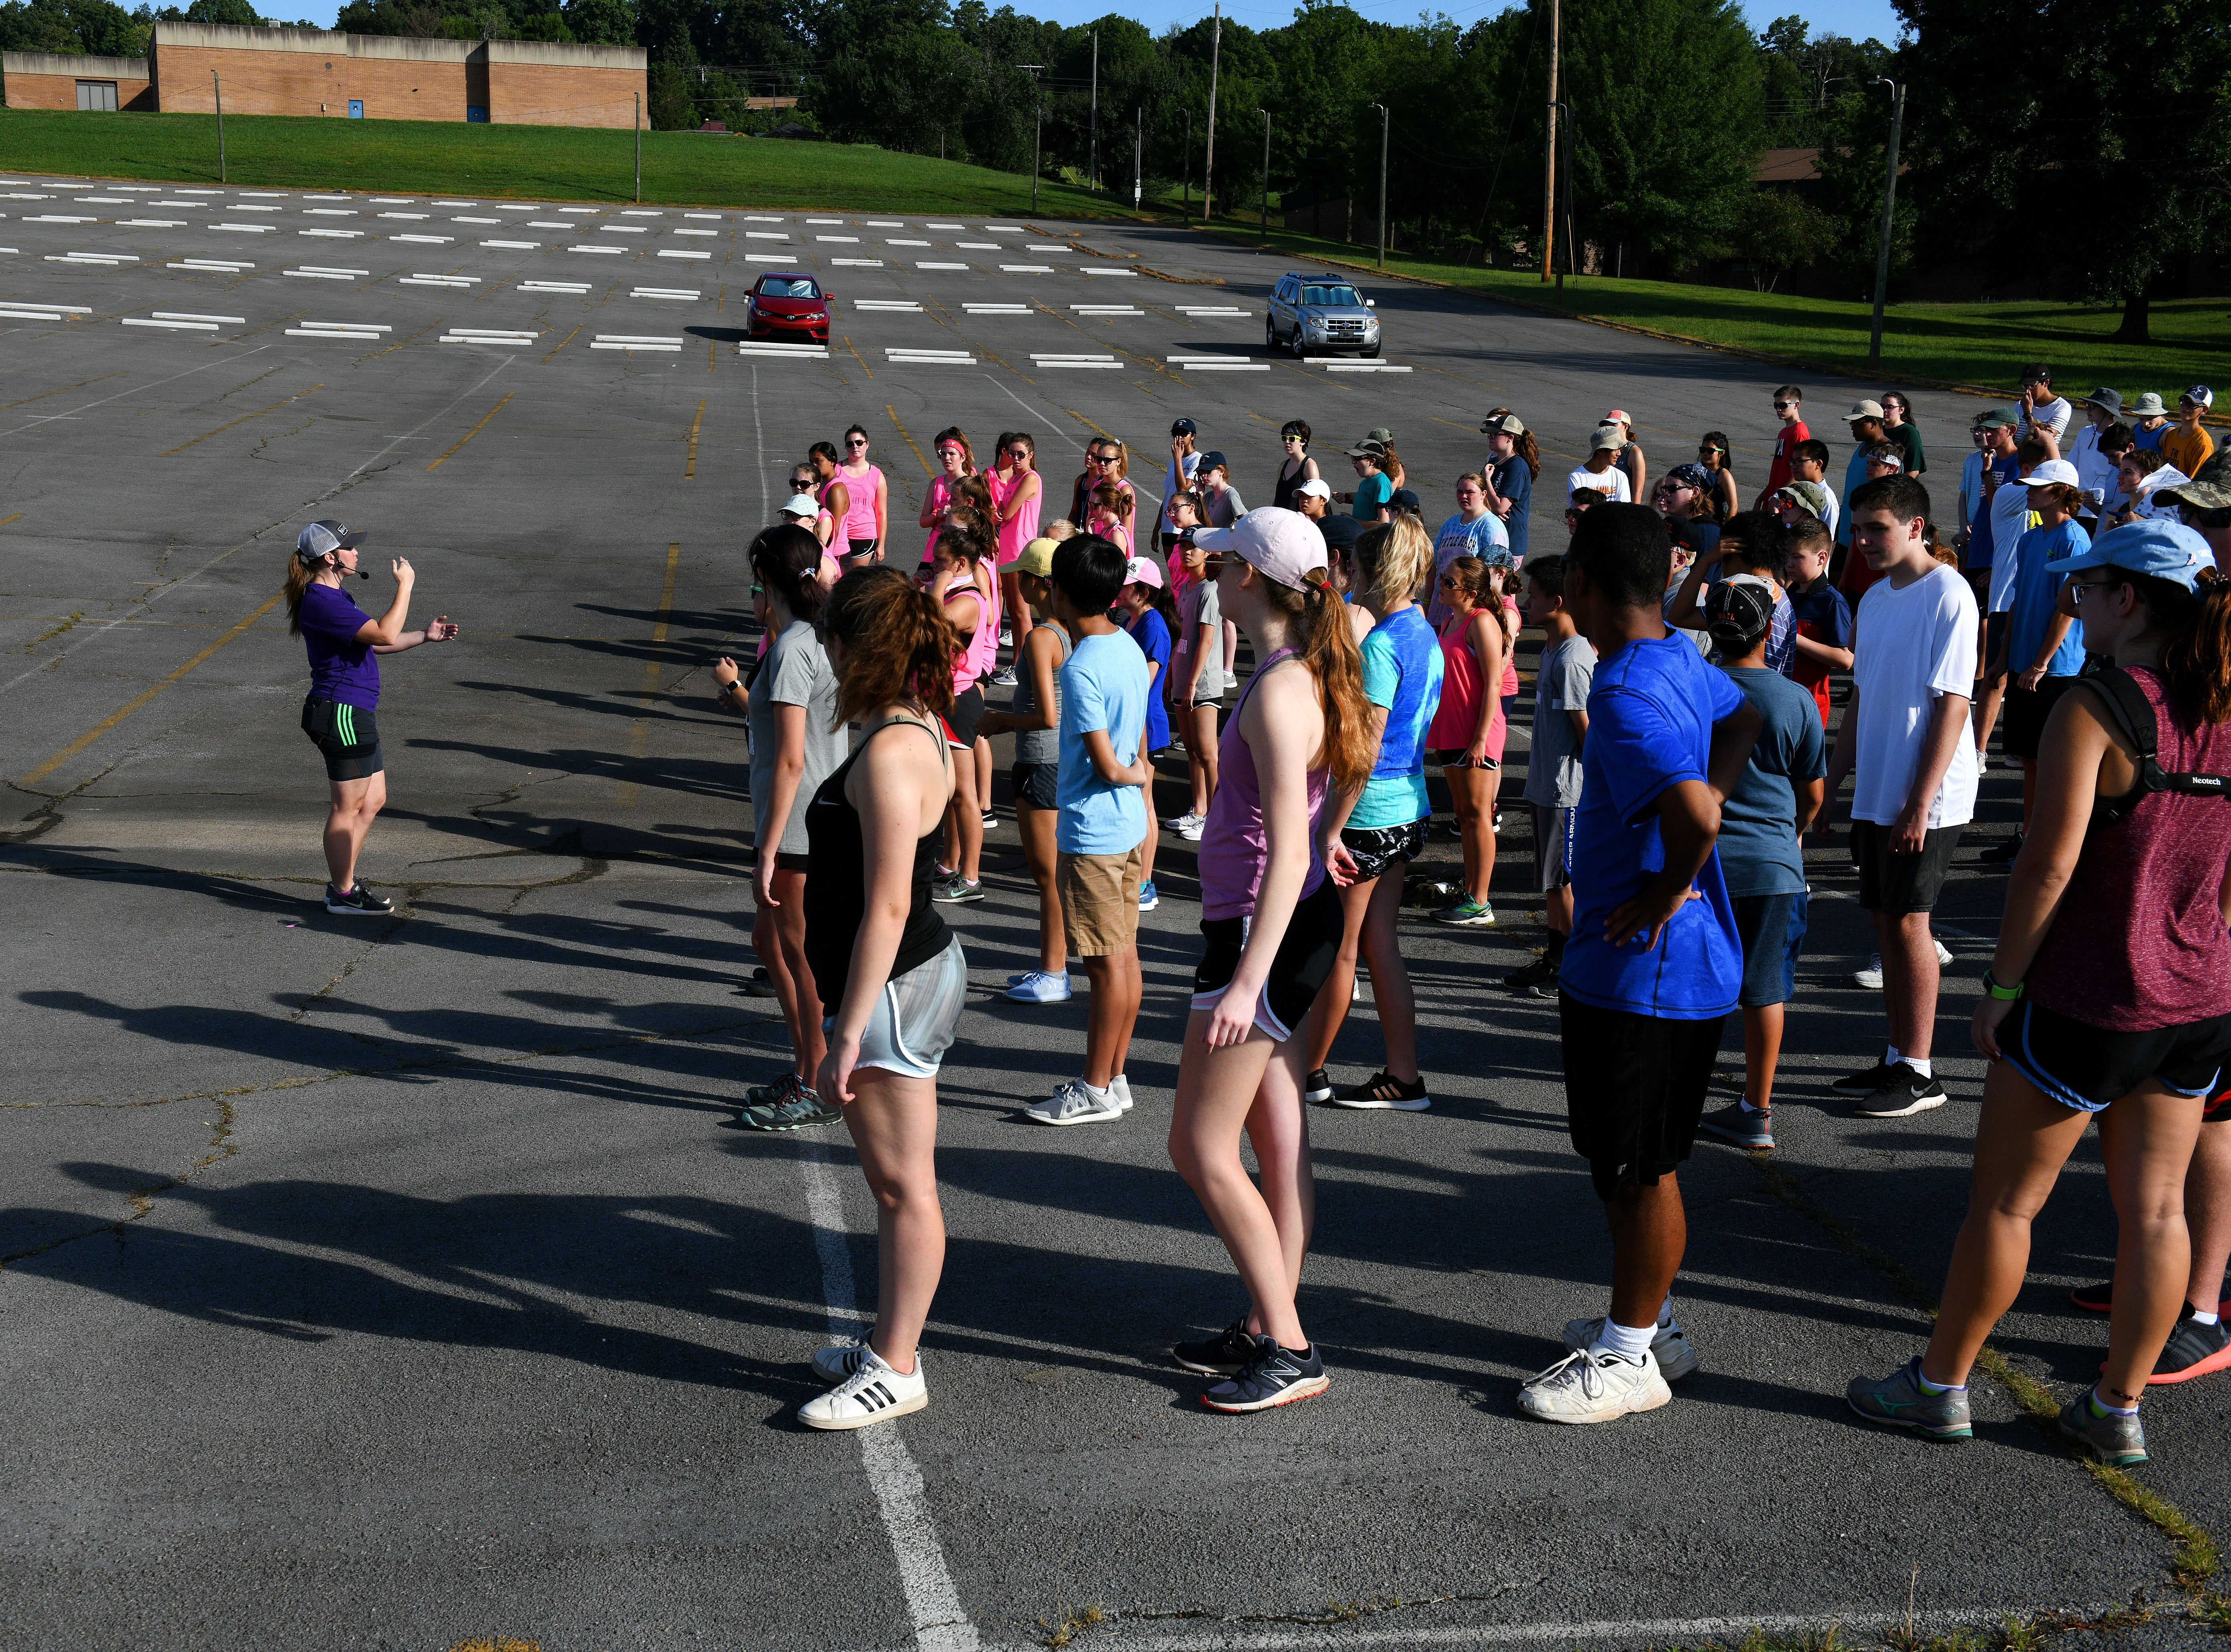 Assistant director Elizabeth Gott leading drills during Farragut High School band camp Wednesday, July 18, 2018 on a parking lot at the high school.